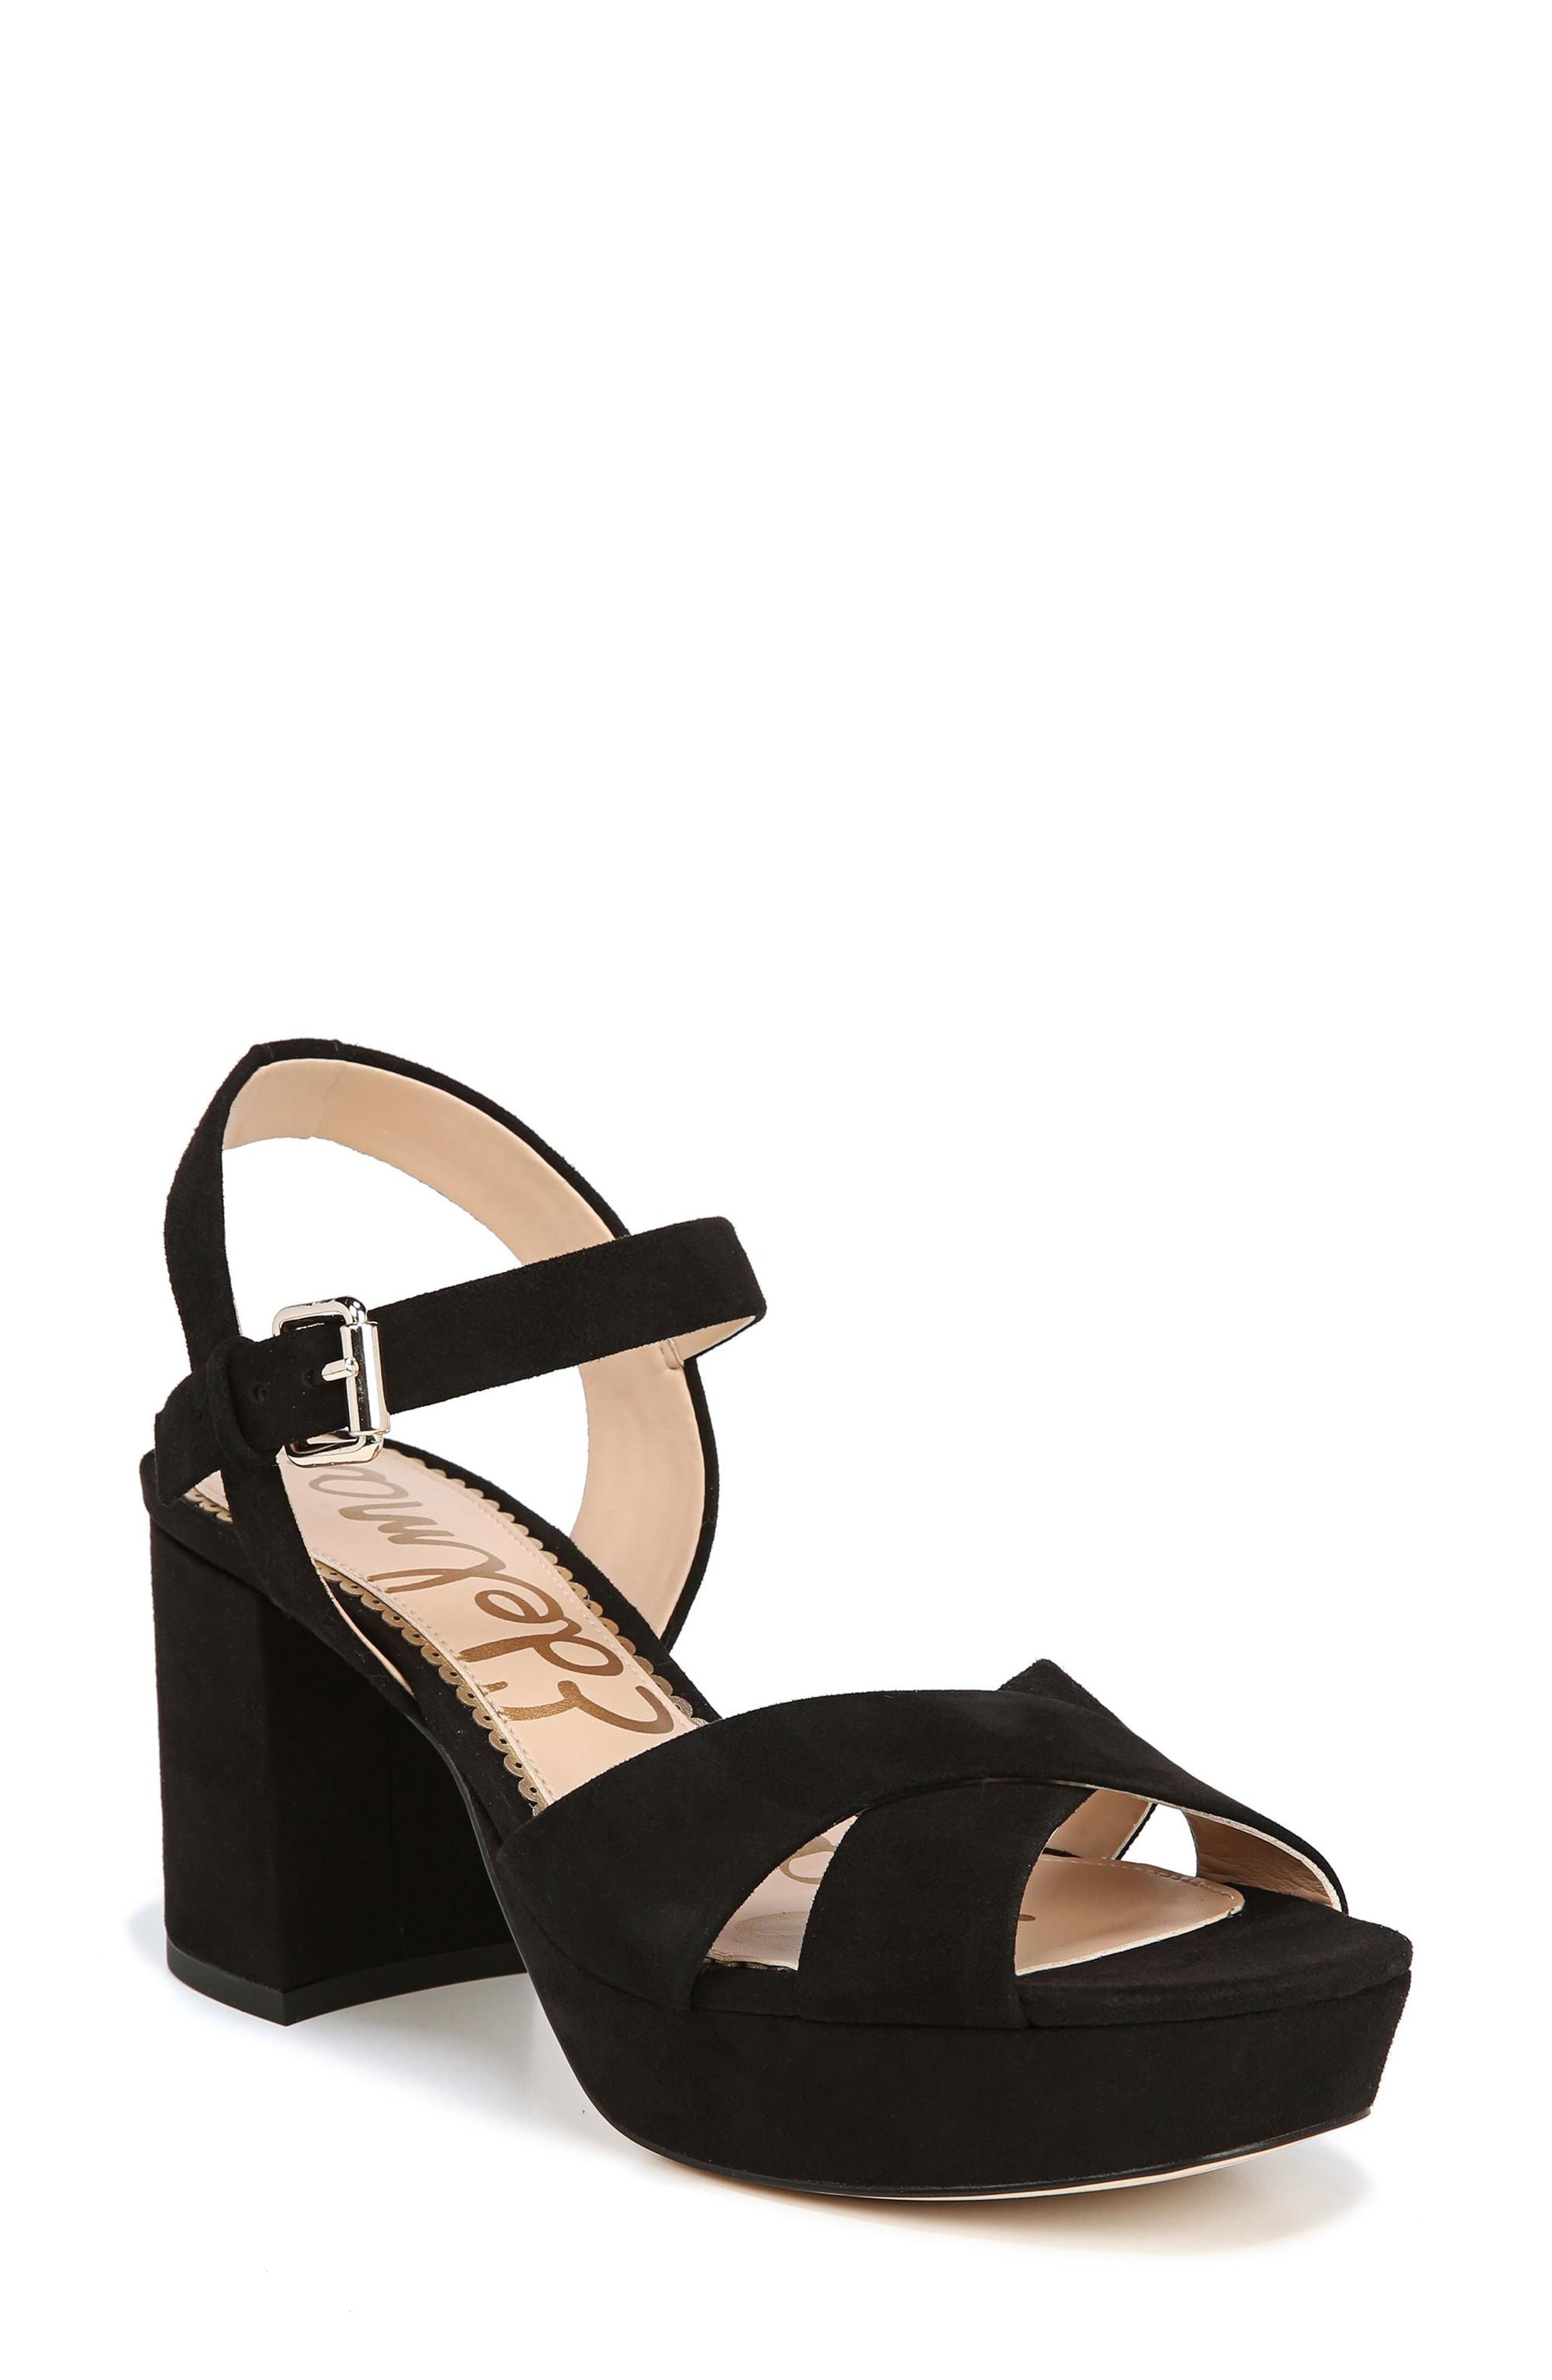 Jolene Platform Sandal,                         Main,                         color, BLACK SUEDE